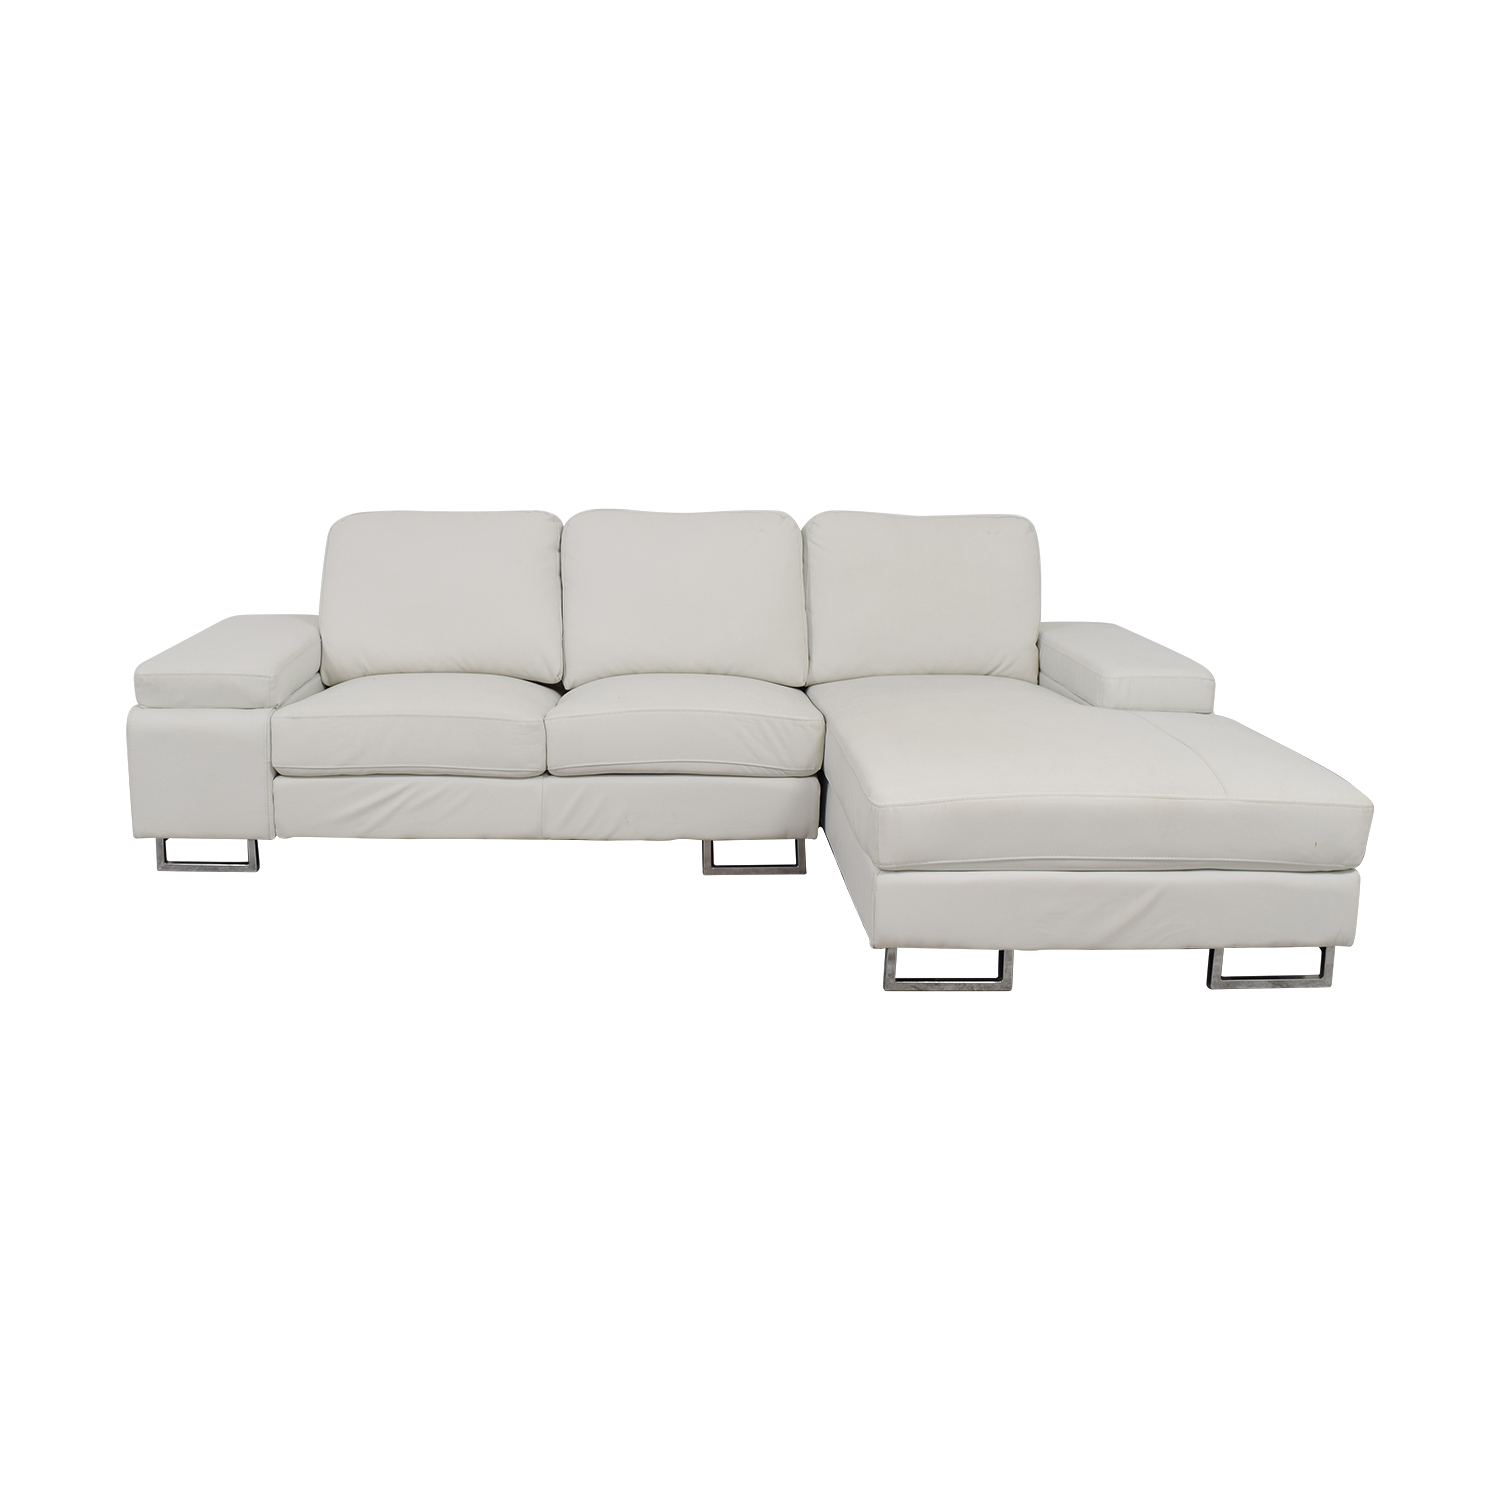 shop Lumens Lumens White Leather Chaise Sectional With Arm Storage online